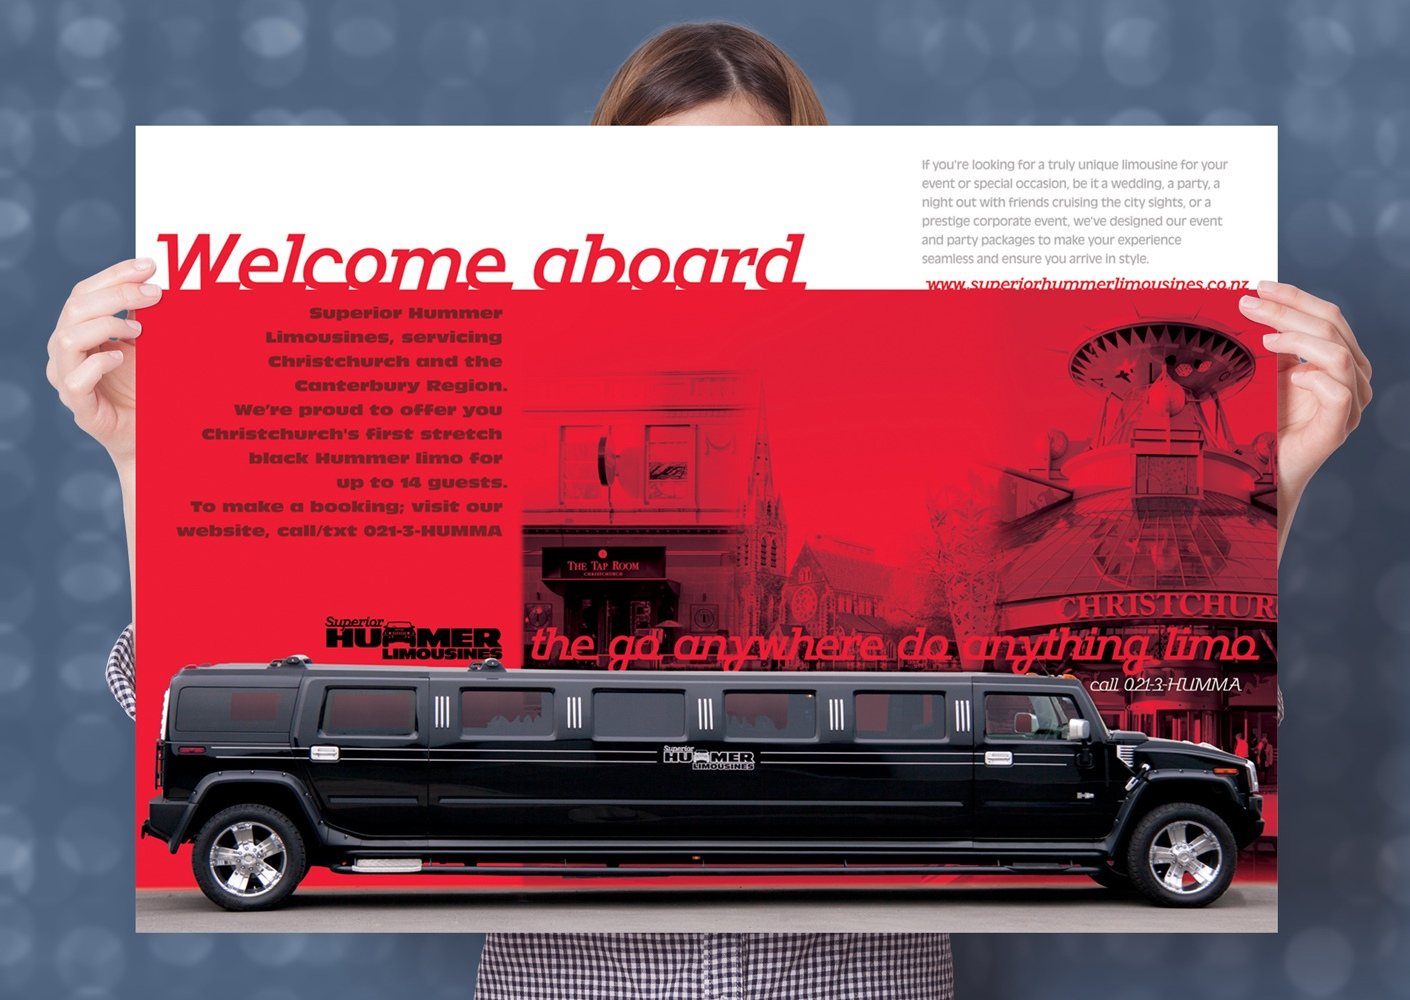 Superior Hummer Limousines, A2 Poster art, display, Promotional design and advertising, digital illustration, photography